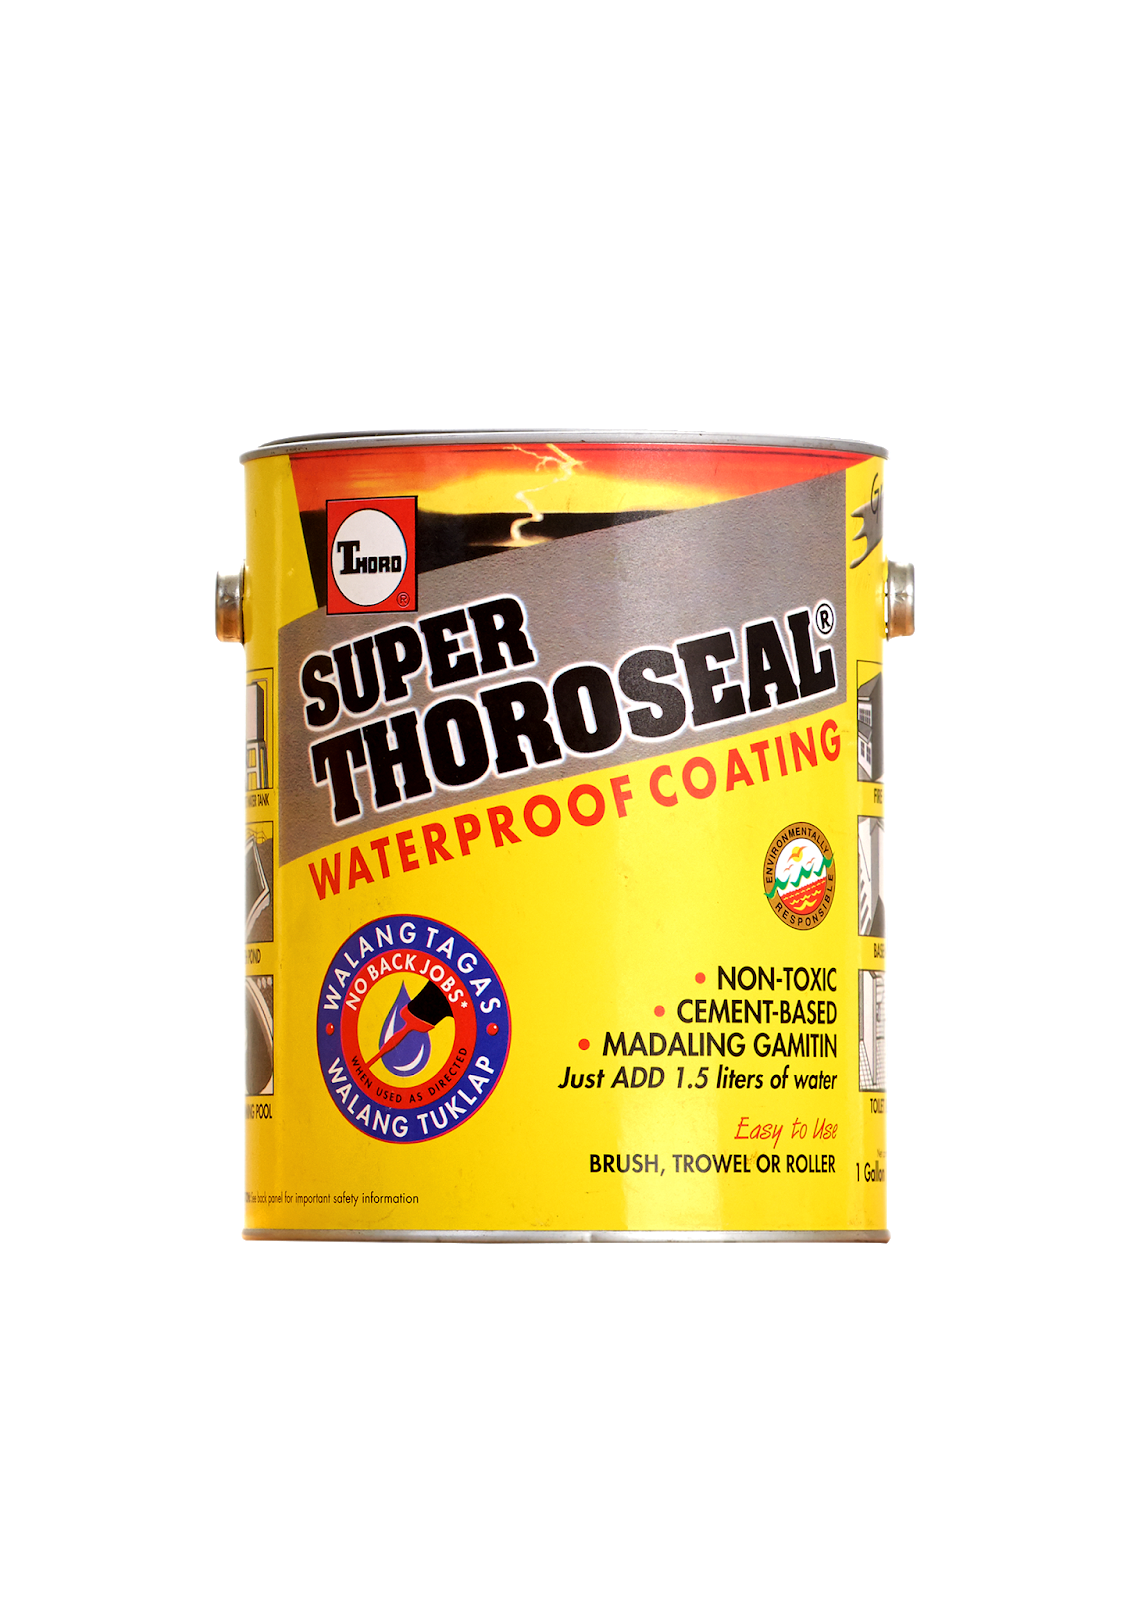 76a2bdbb8cd9 Waterproof your homes easier with JDI s Super Thoroseal and ...